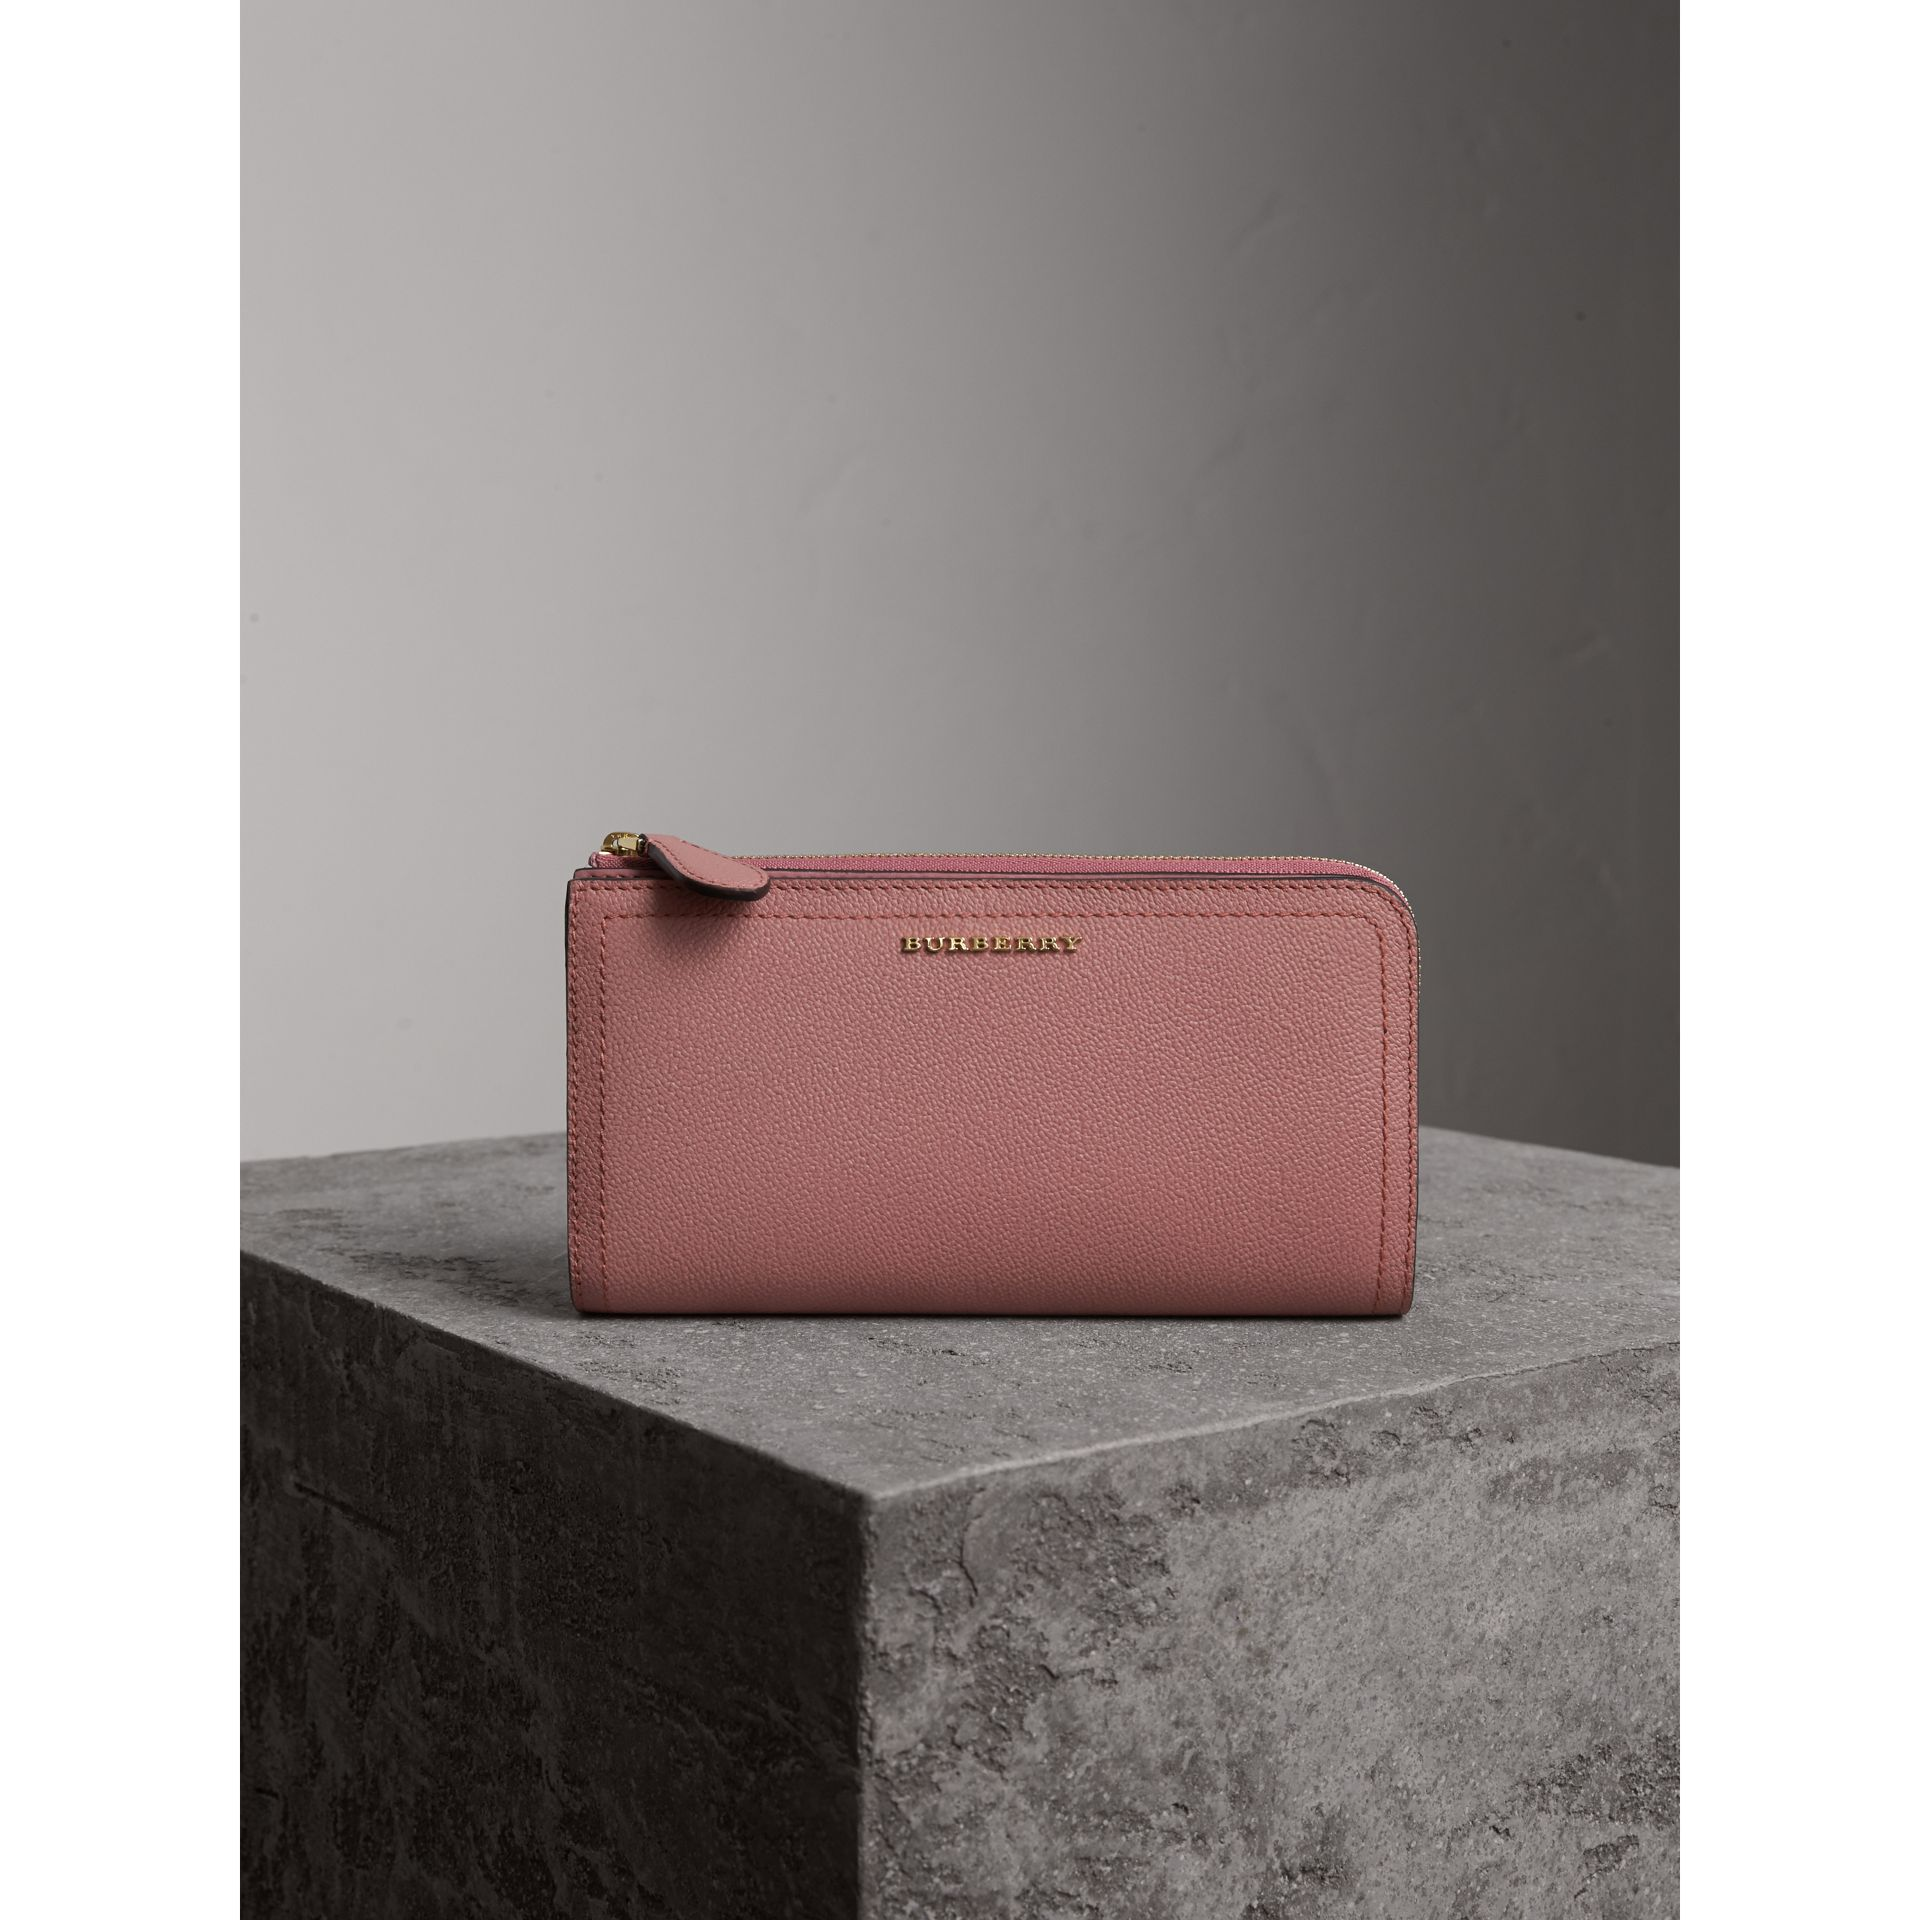 Grainy Leather Ziparound Wallet in Dusty Pink - Women | Burberry United States - gallery image 5